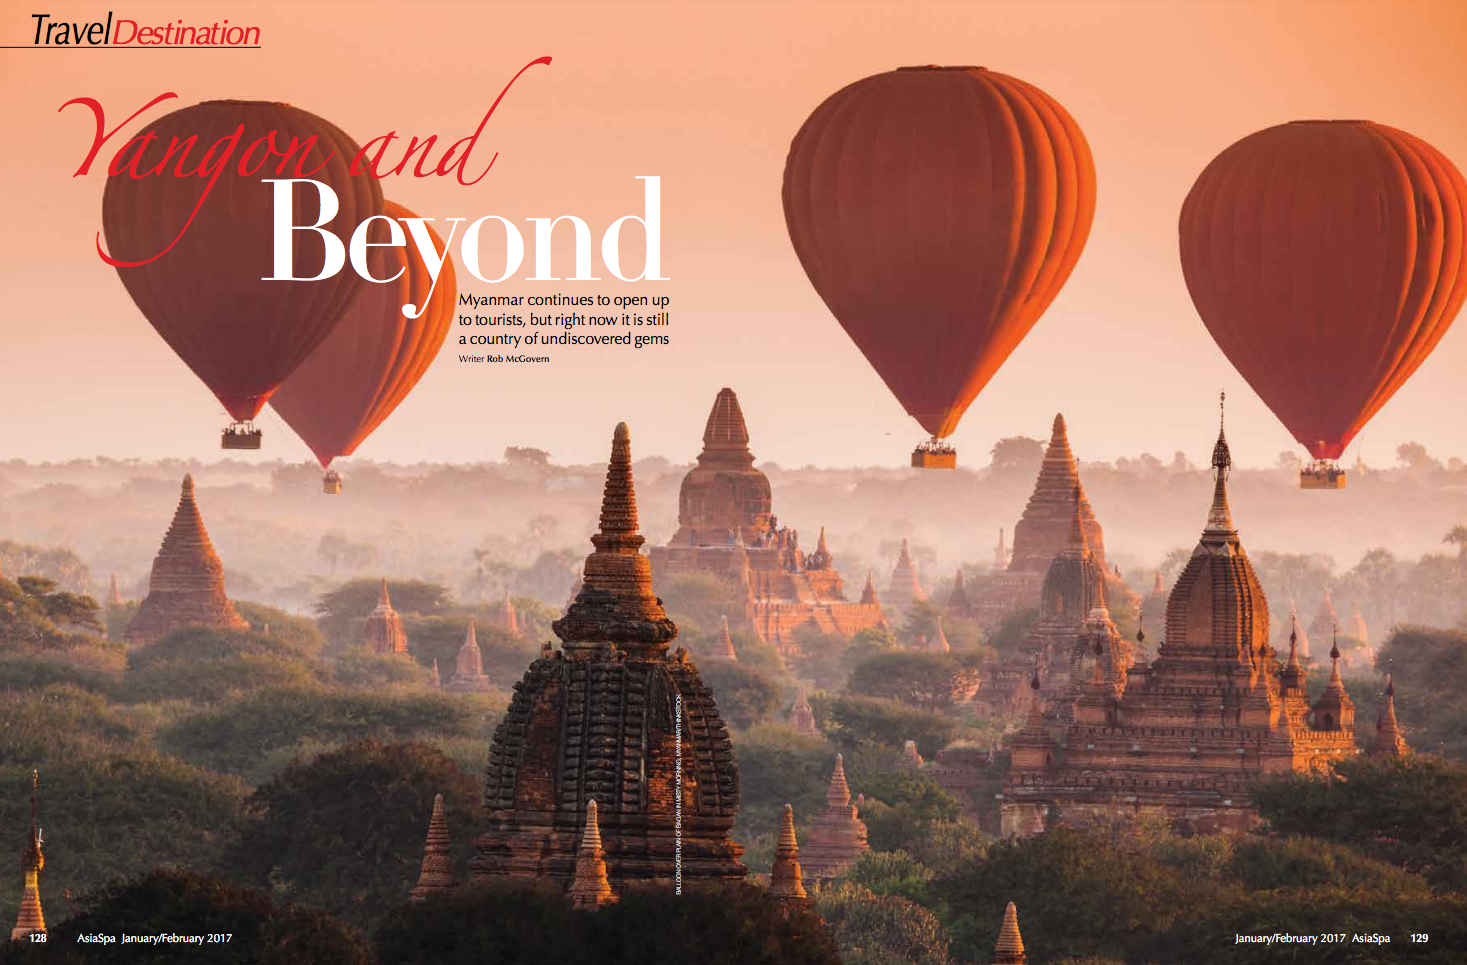 Yangon and Beyond